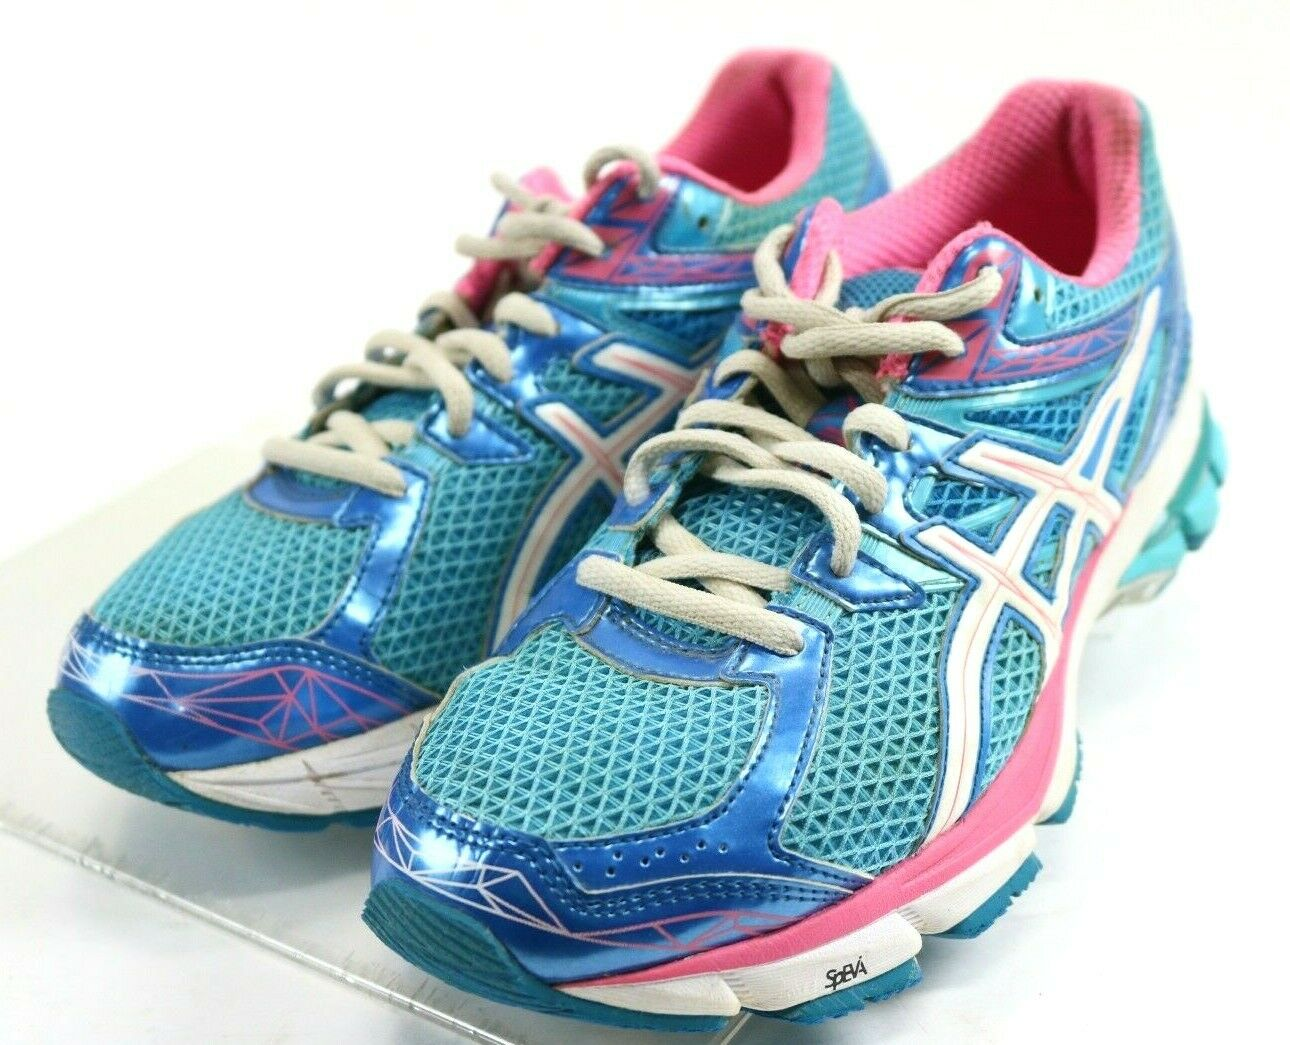 Asics GT-1000 3  Women's Running shoes Size 8 bluee Pink